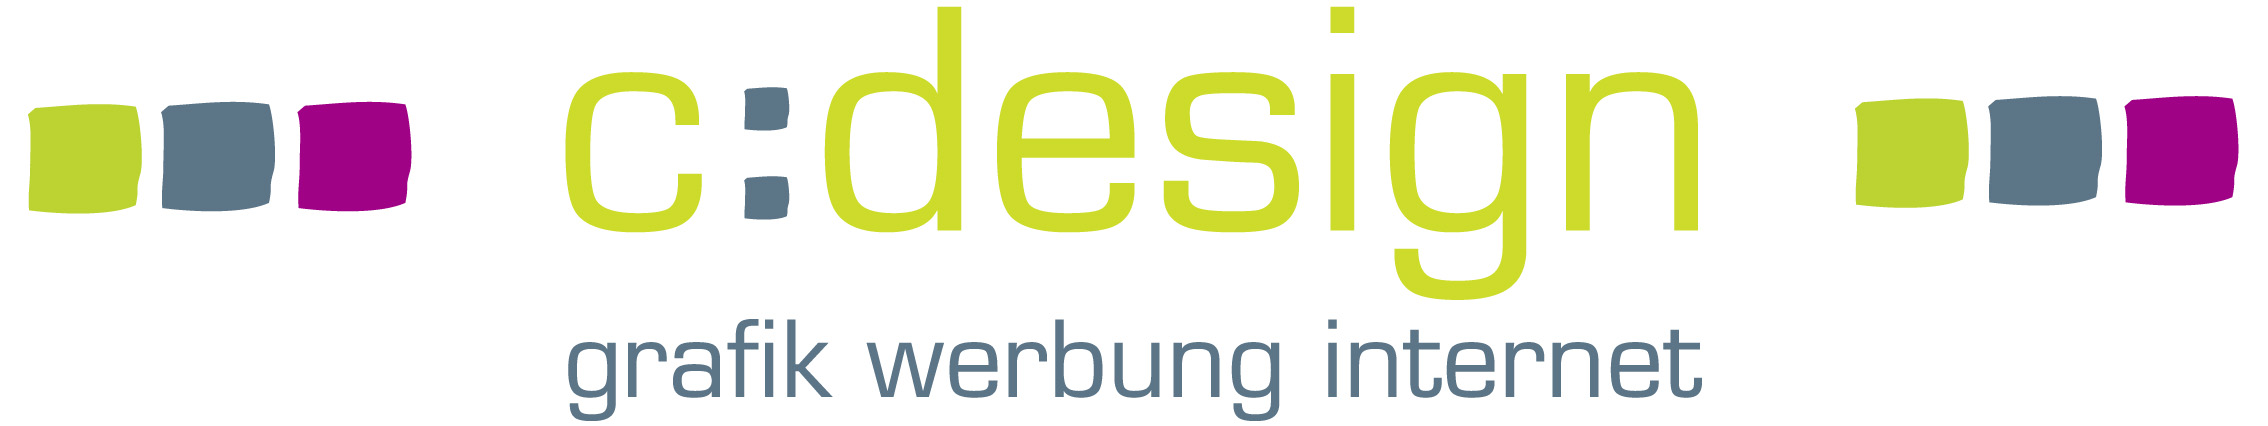 c:design grafik werbung internet